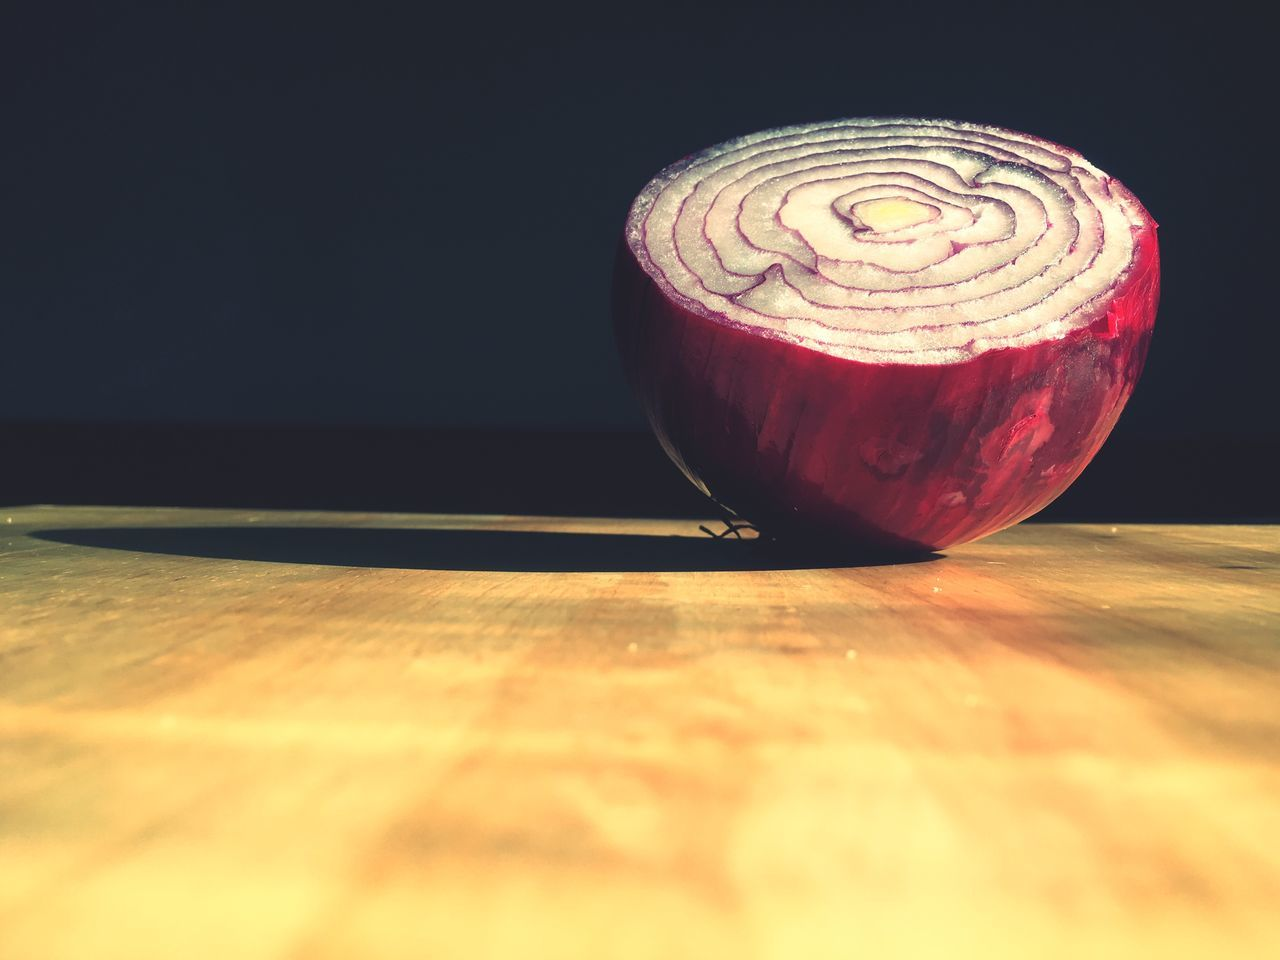 Close-Up Of Onion On Cutting Board